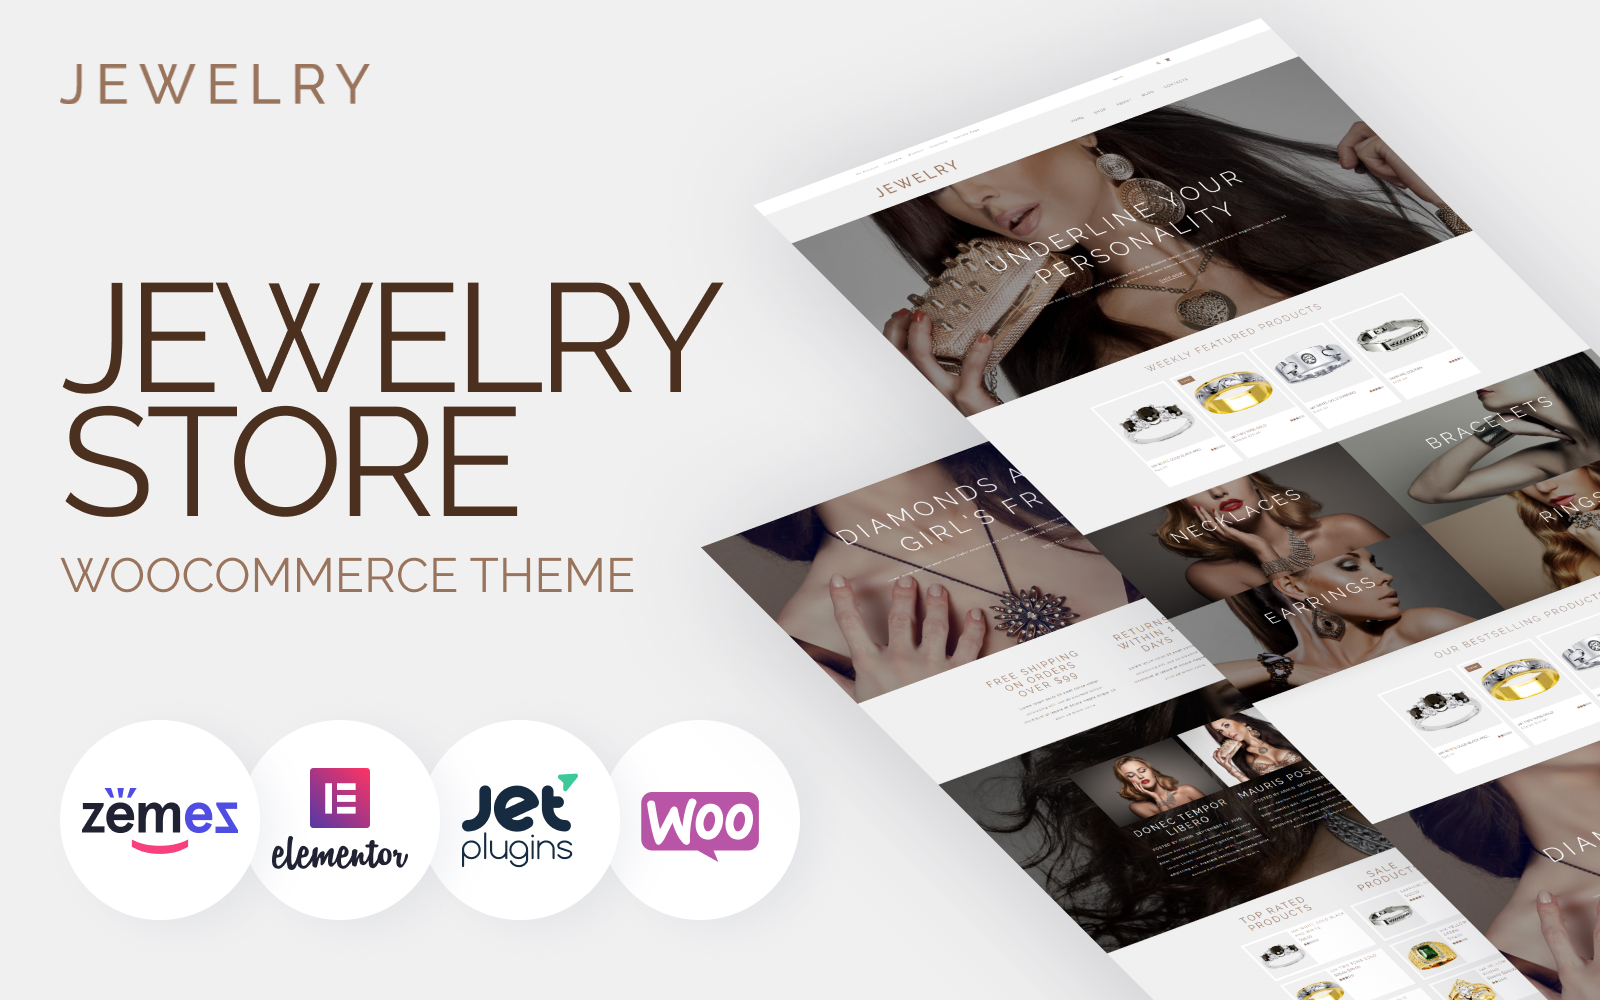 Jewelry - Jewelry Website Design Template for Online Shops WooCommerce Theme - screenshot